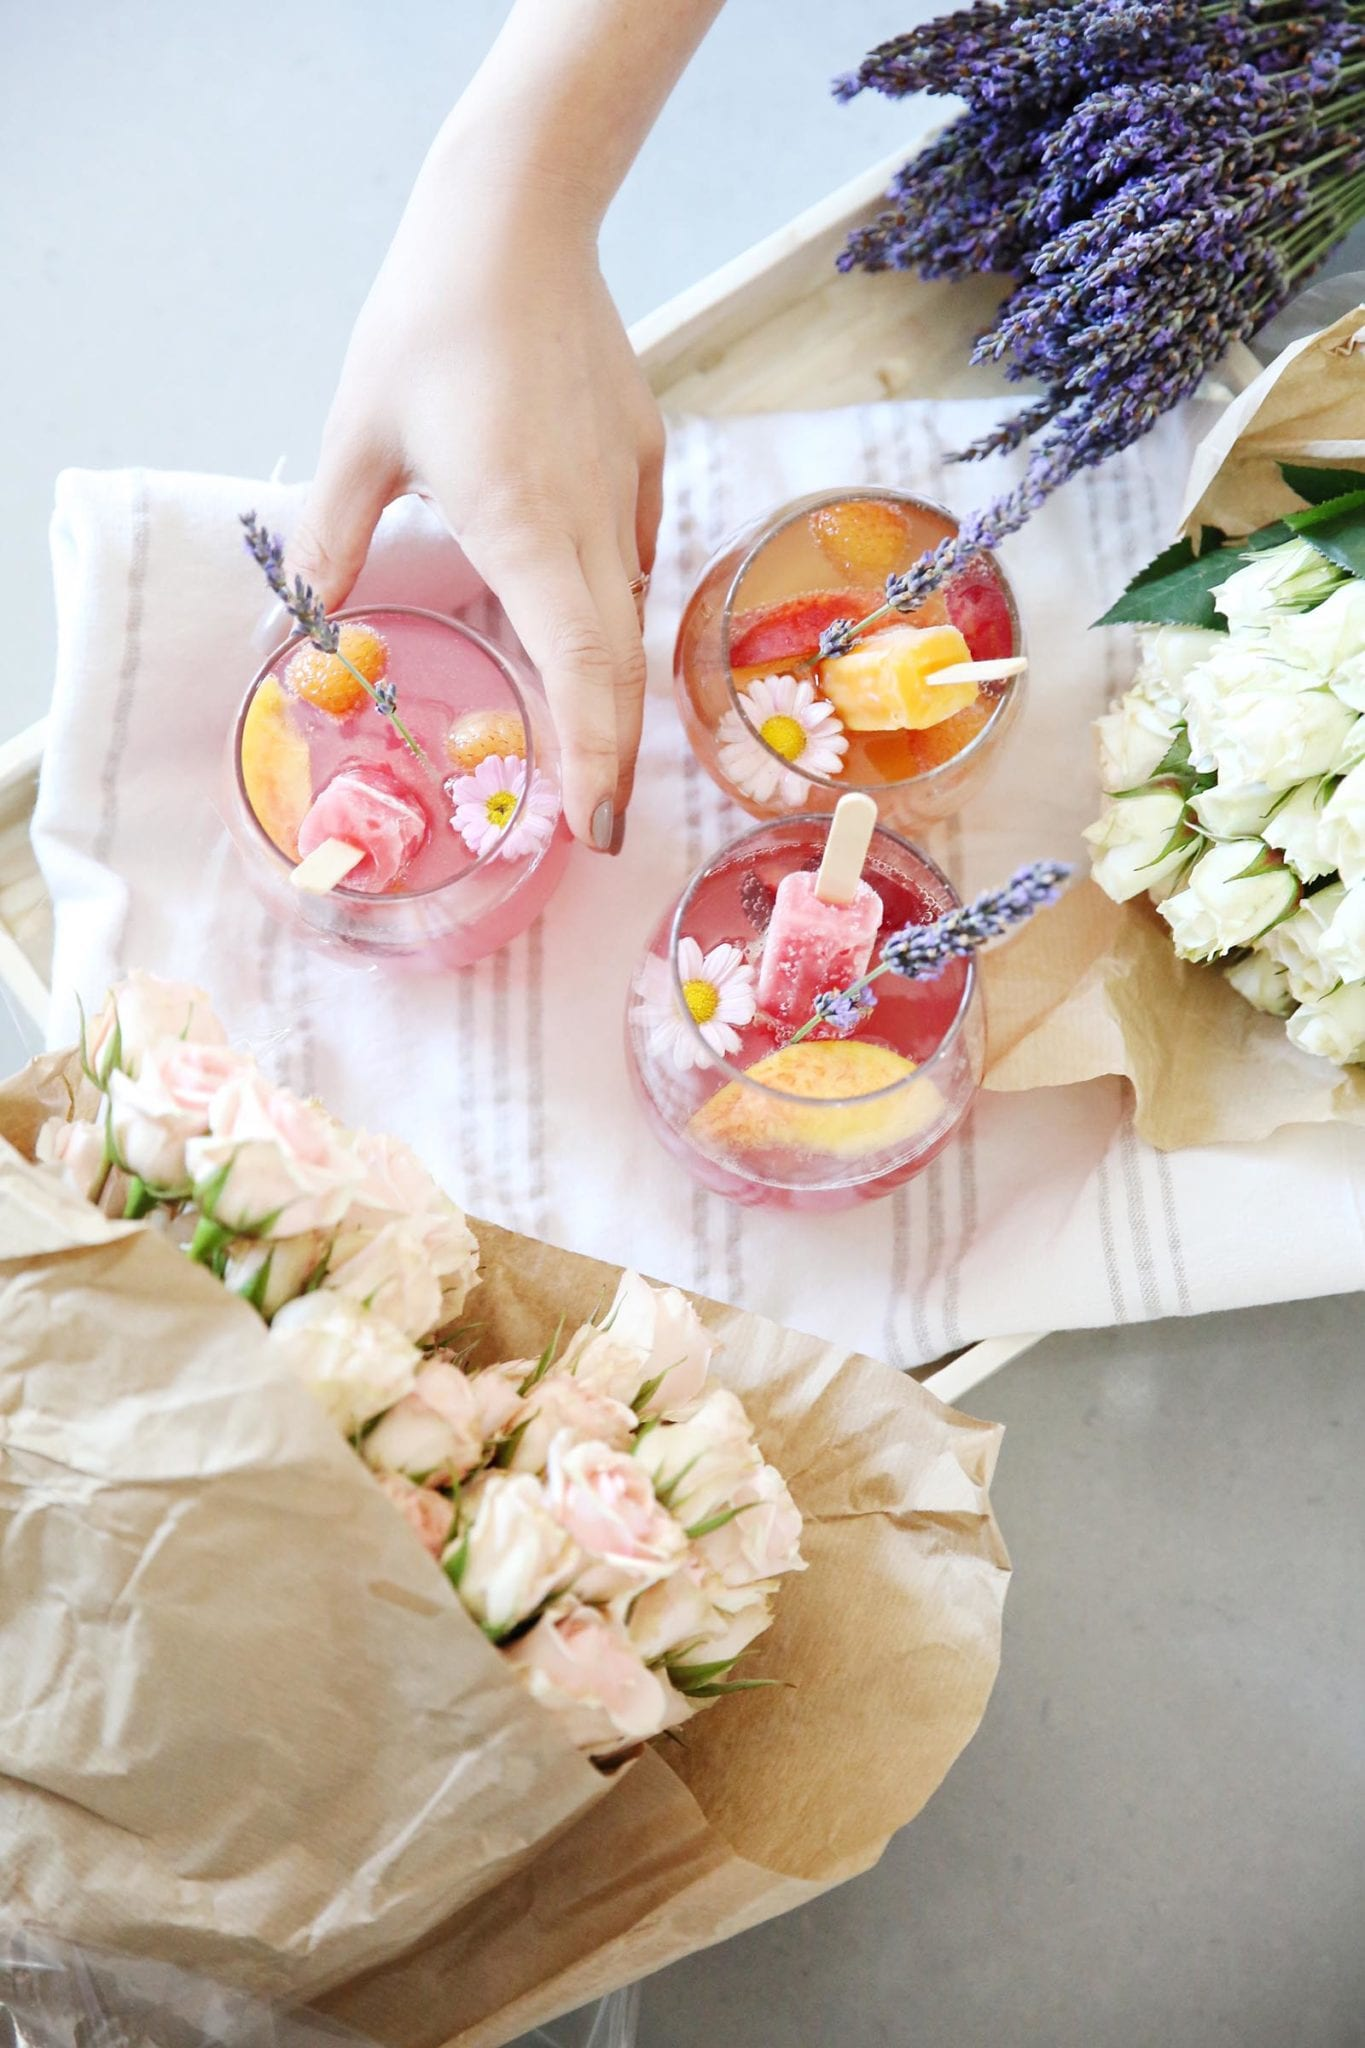 SWEET SUMMERTIME POPSICLE SPRITZ